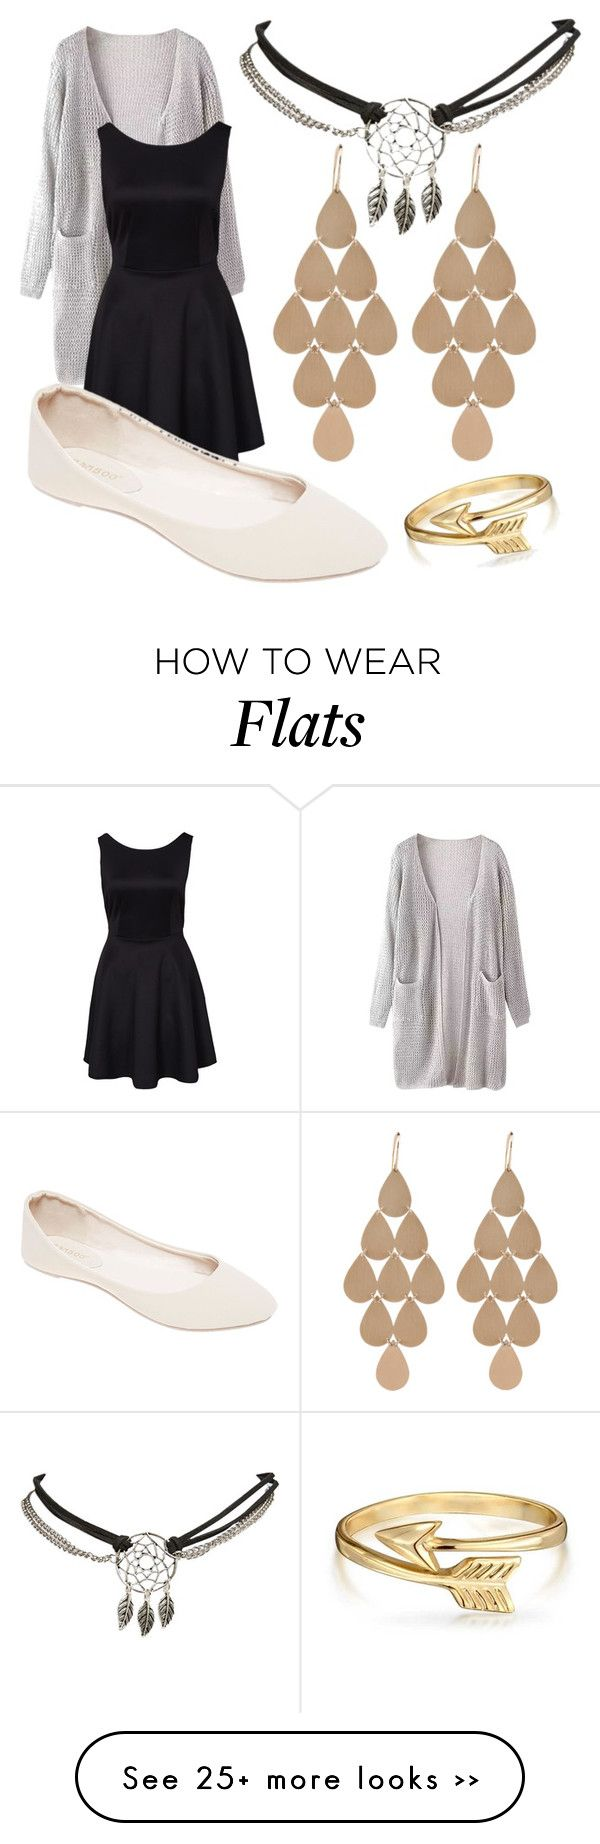 """FREINDS"" by thatredheadgirl3 on Polyvore"